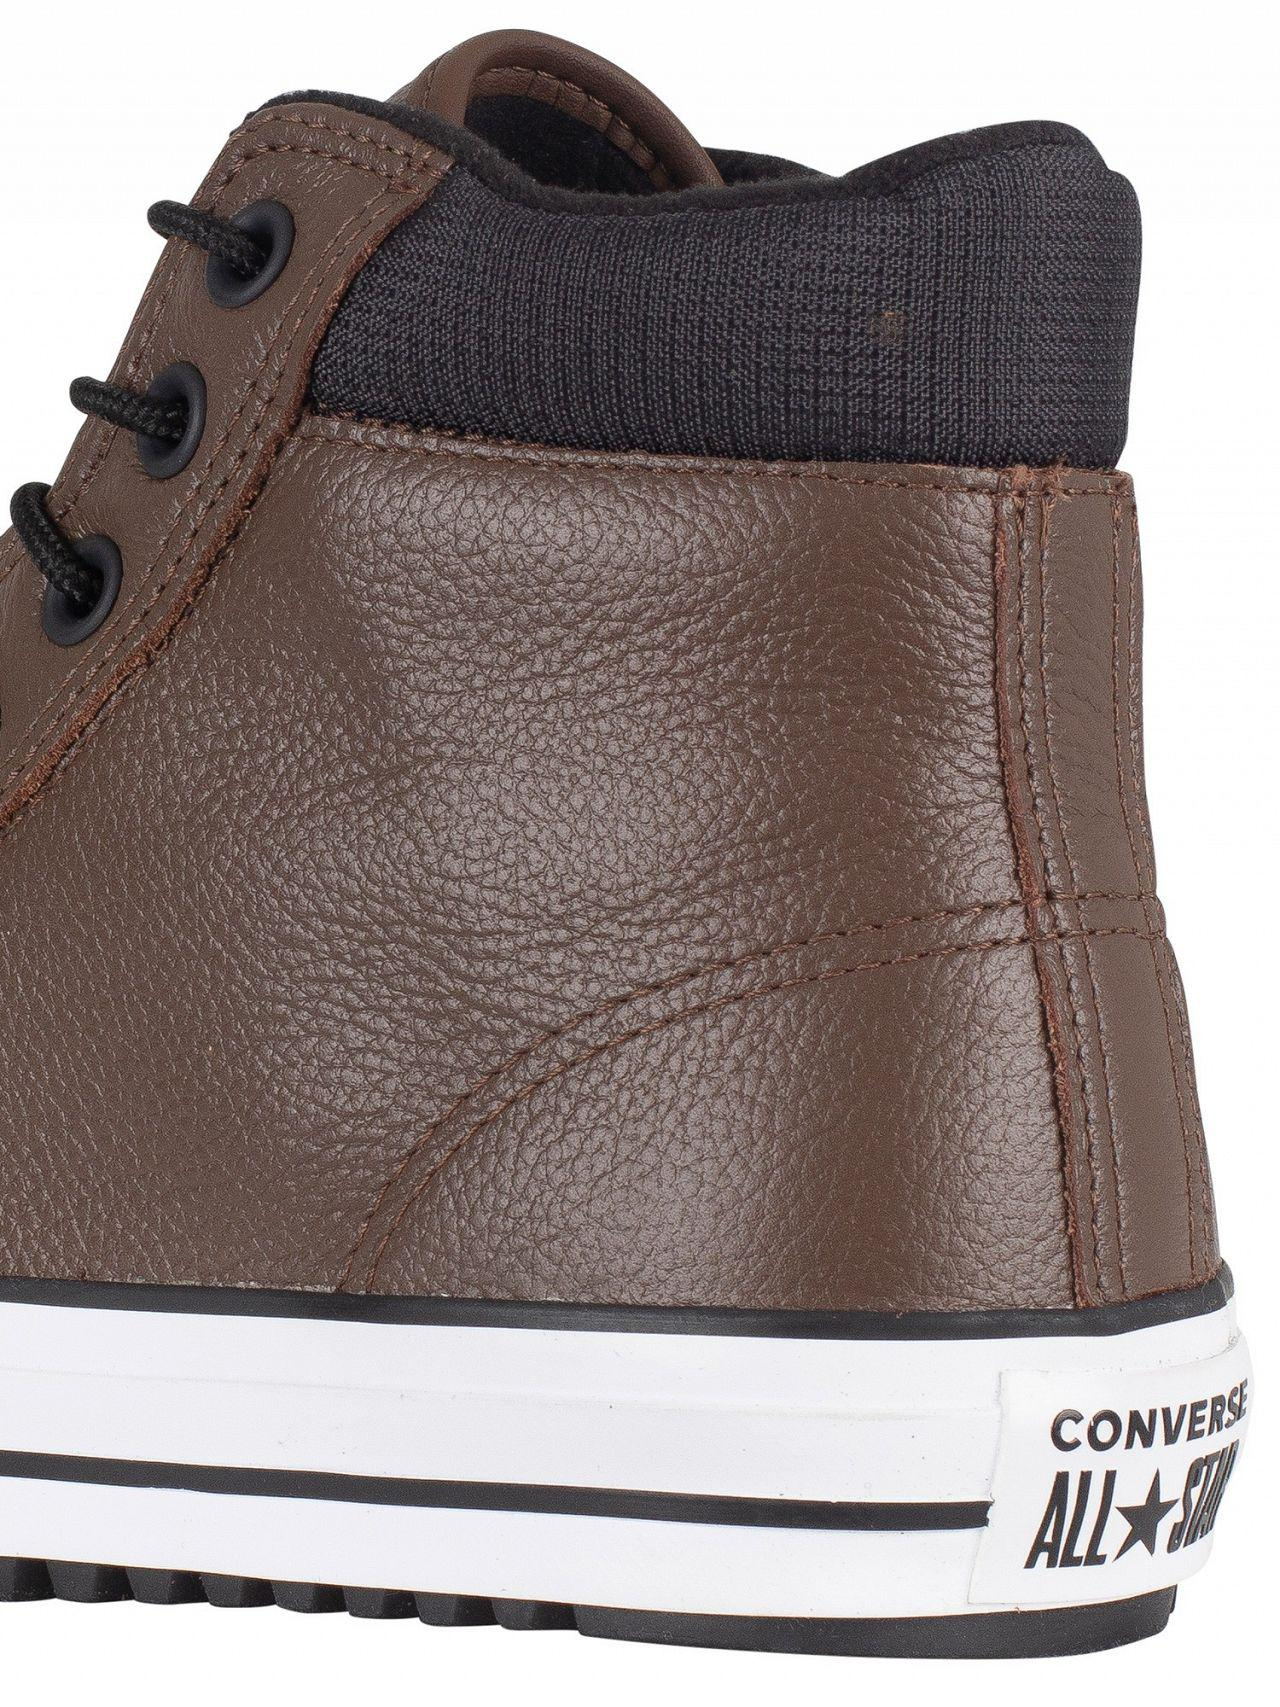 2ecd29a7888 Converse Chocolate black white Ct All Star Hi Pc Leather Boots in ...